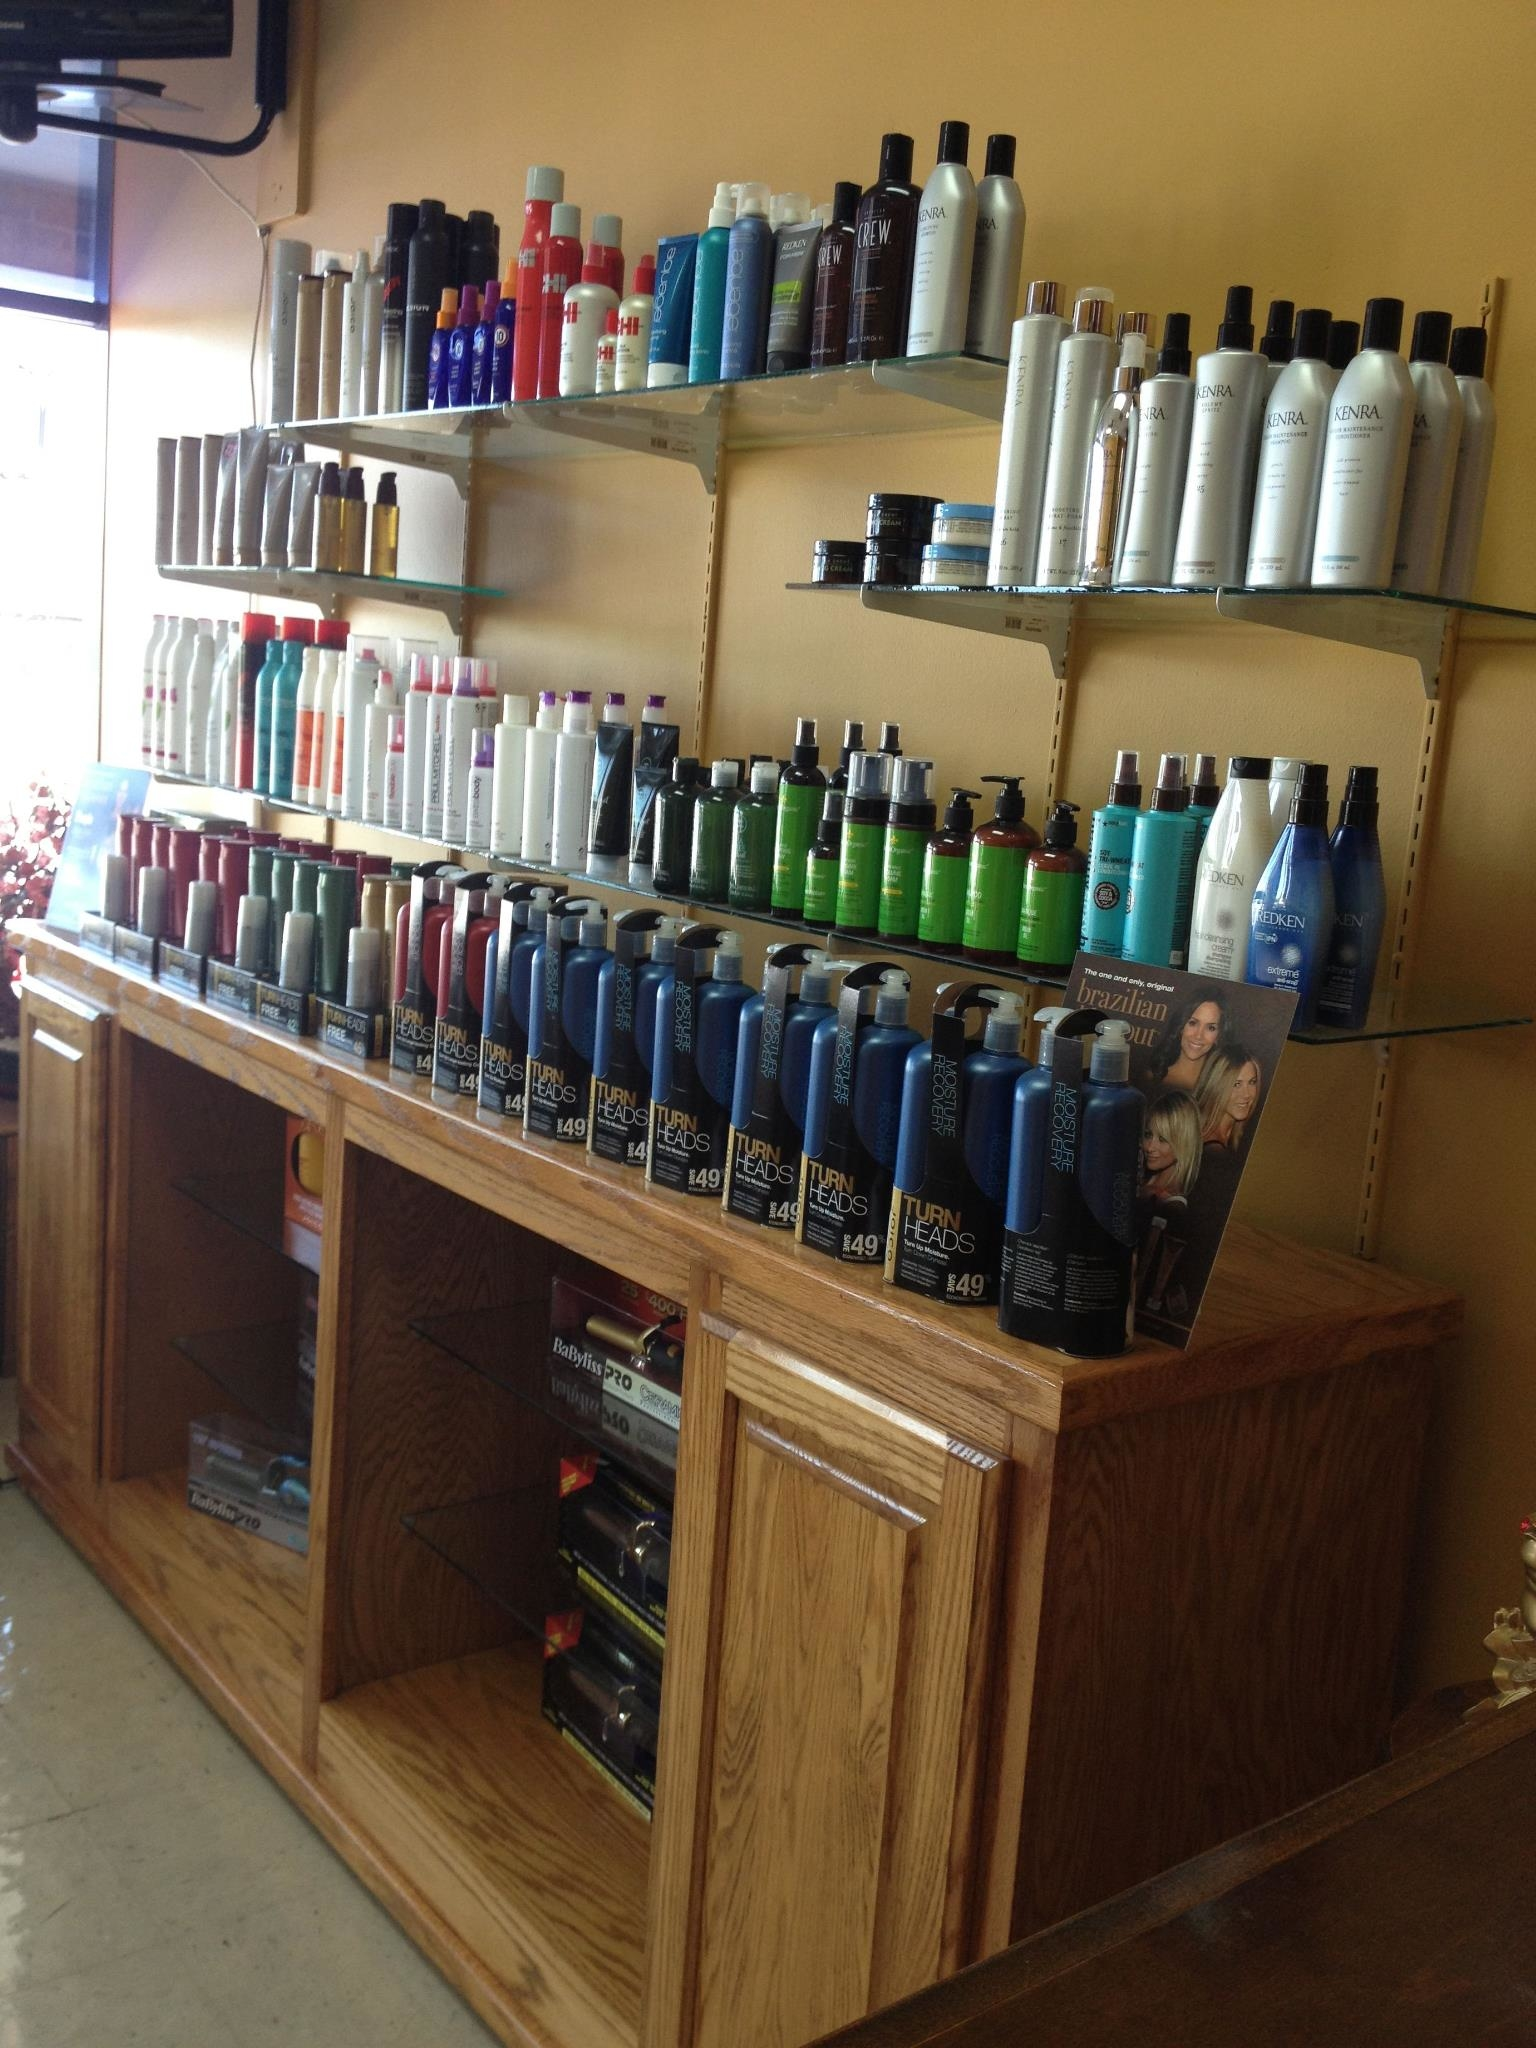 N 39 style salon coupons near me in austin 8coupons for 24 hour nail salon los angeles